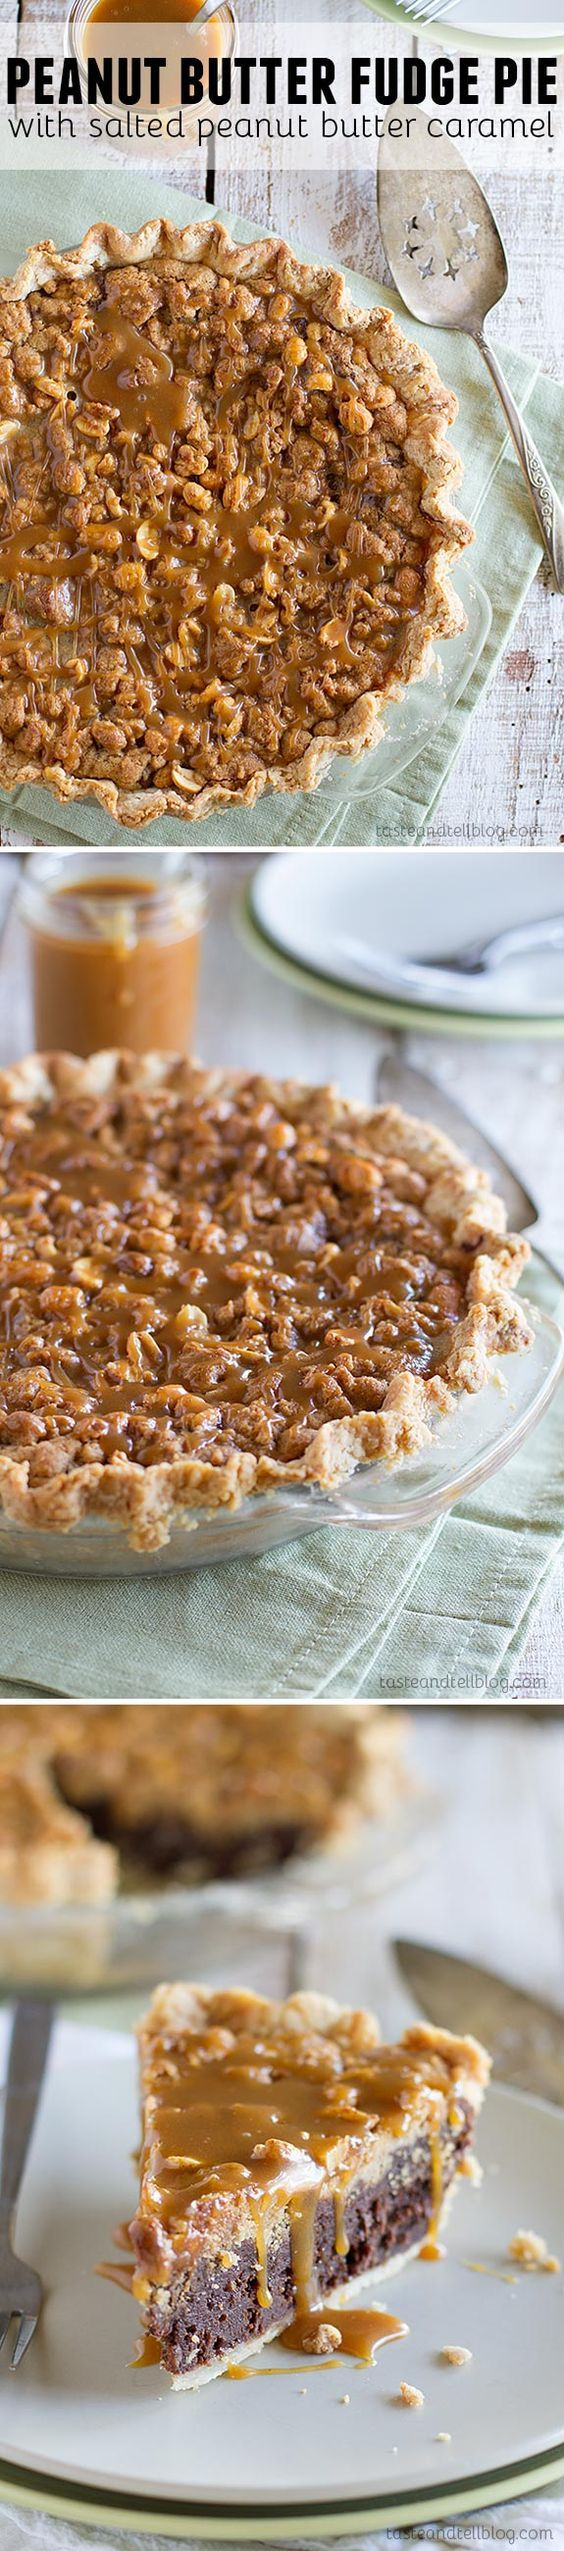 This pie is over the top delicious! A fudge layer is topped with a peanut butter crumble, then the whole thing is served with a delicious salted peanut butter caramel.